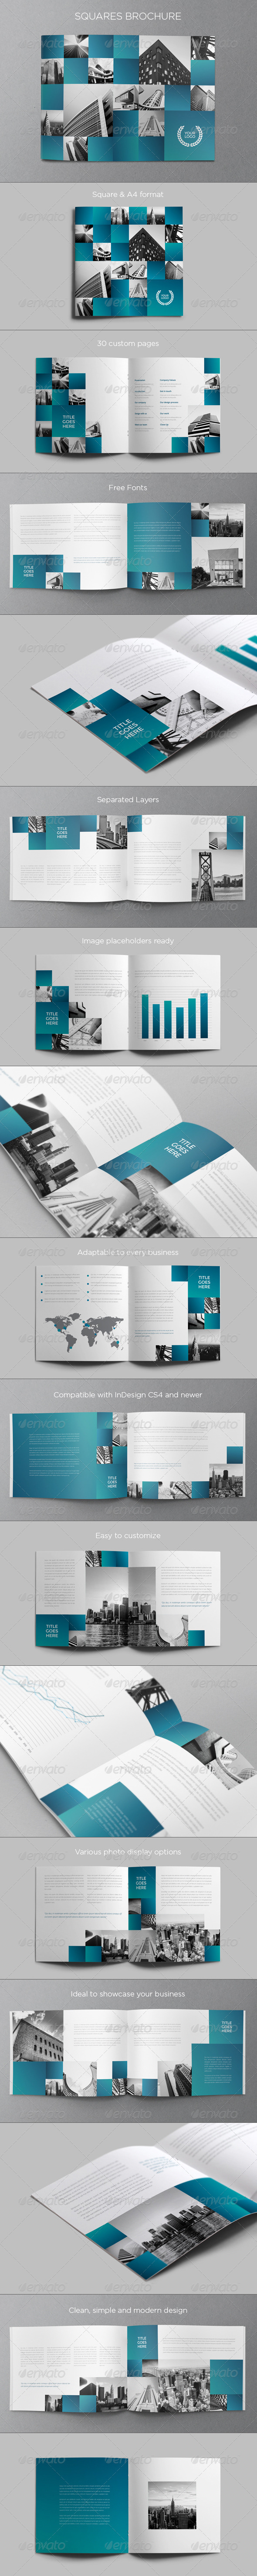 GraphicRiver Architecture Squares Brochure 5993725